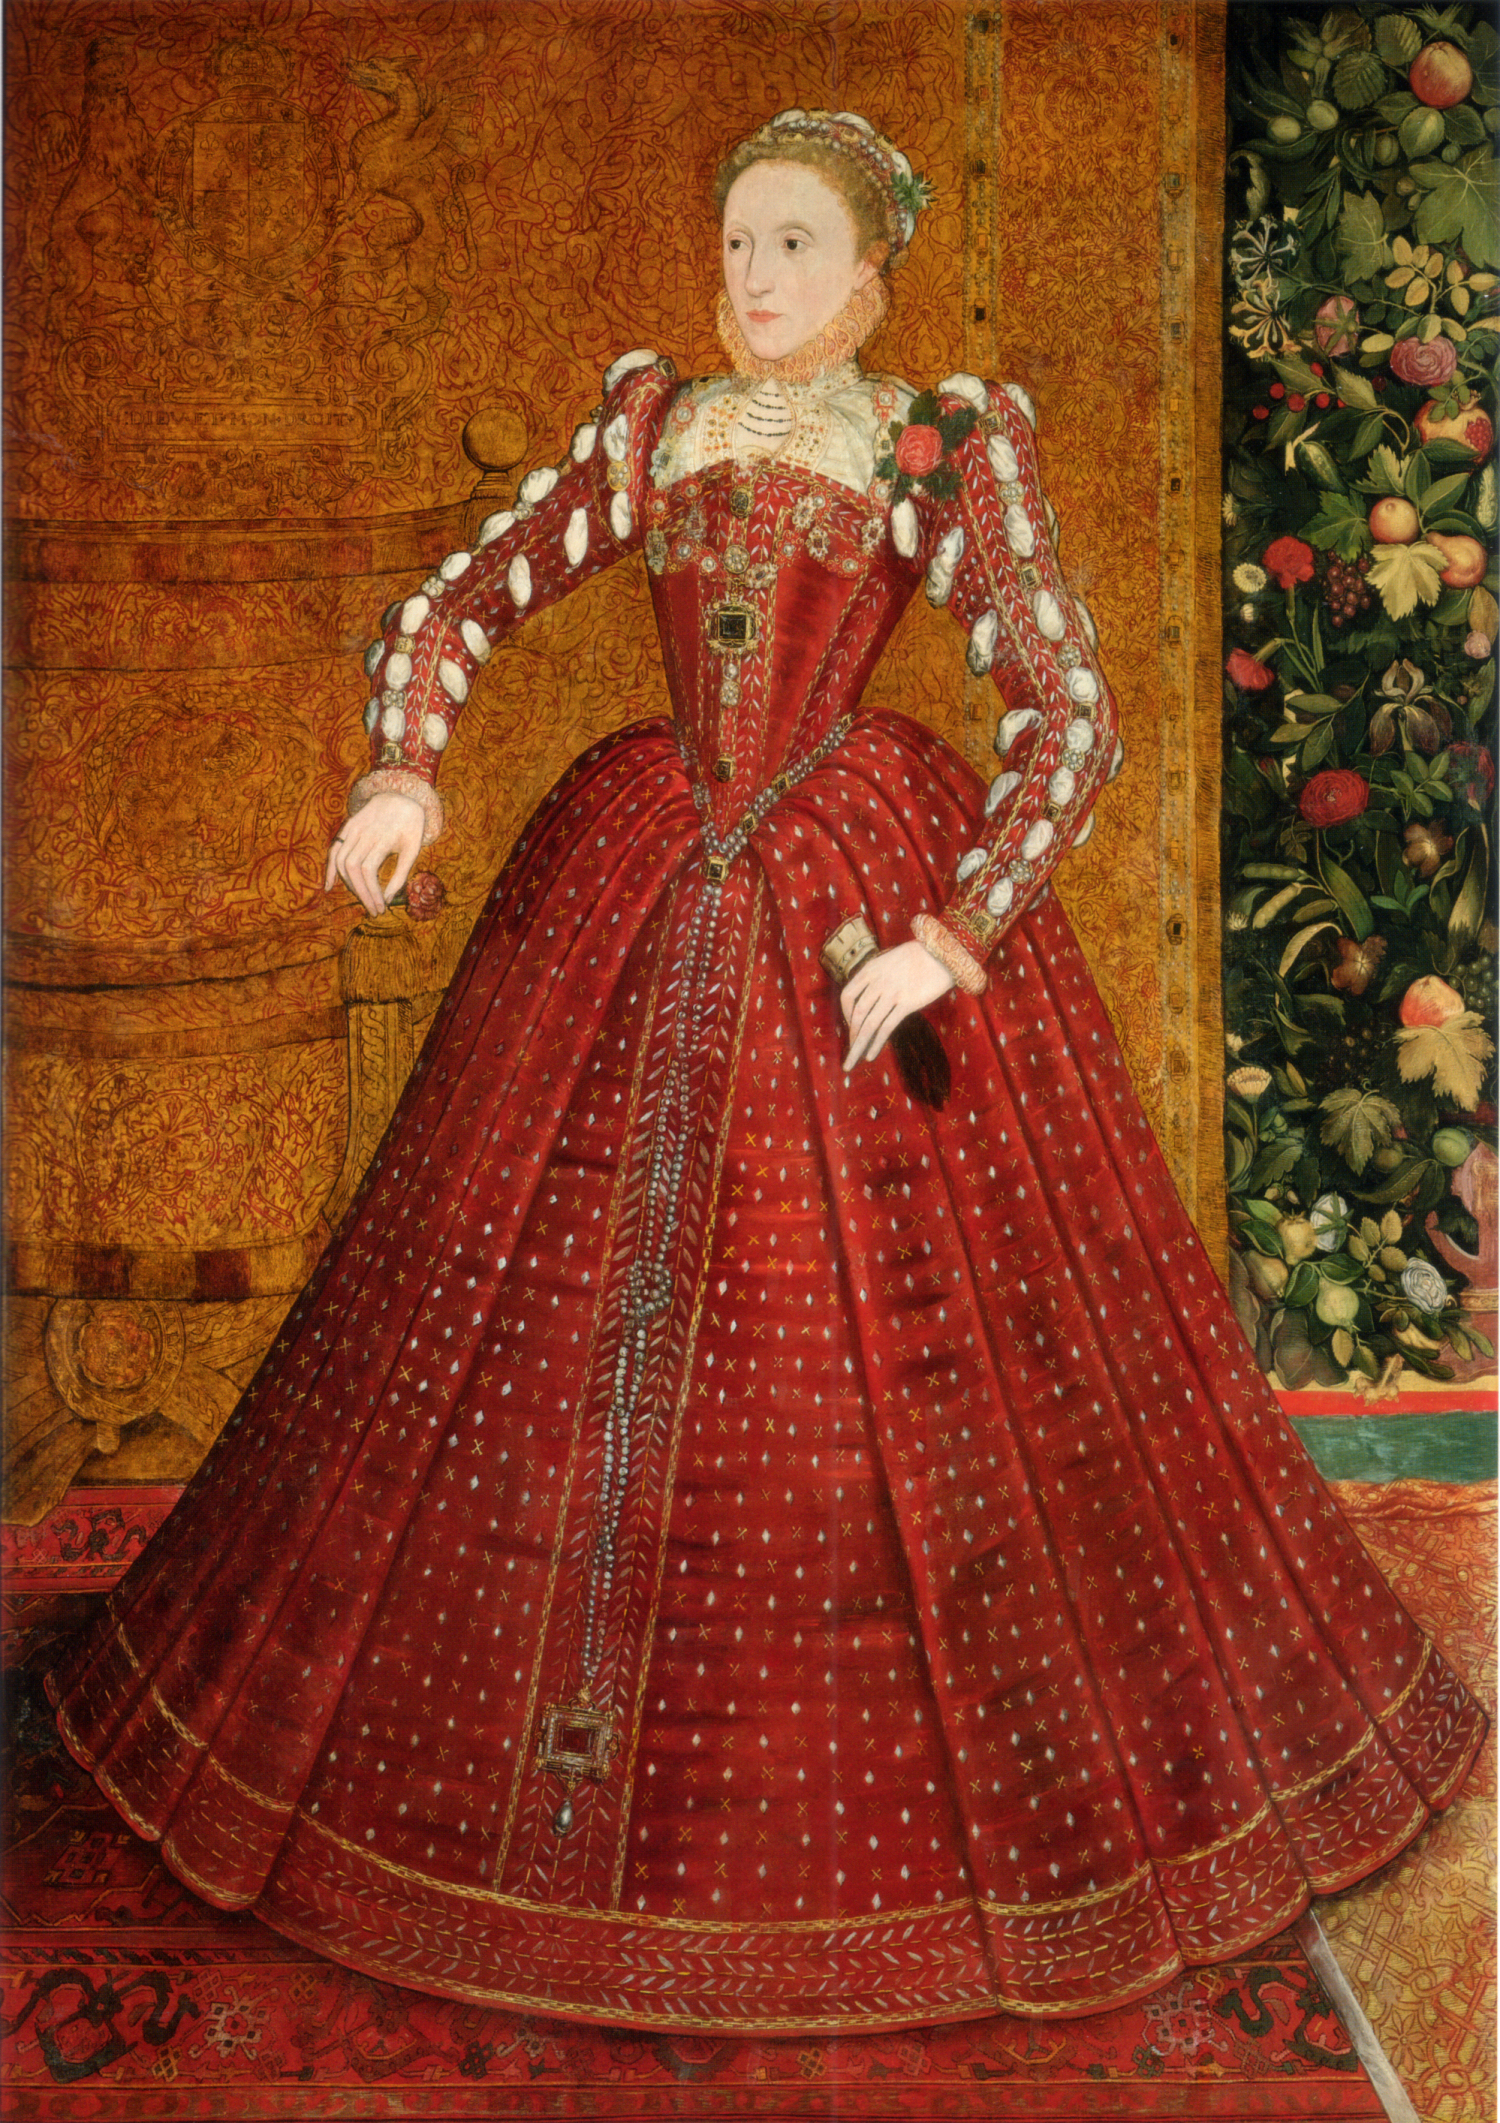 an overview of womens fashion in elizabethan england Women's roles during the elizabethan era lacey yahnke early elizabethan england 1558-1588: the ultimate fashion history 25,796 views.